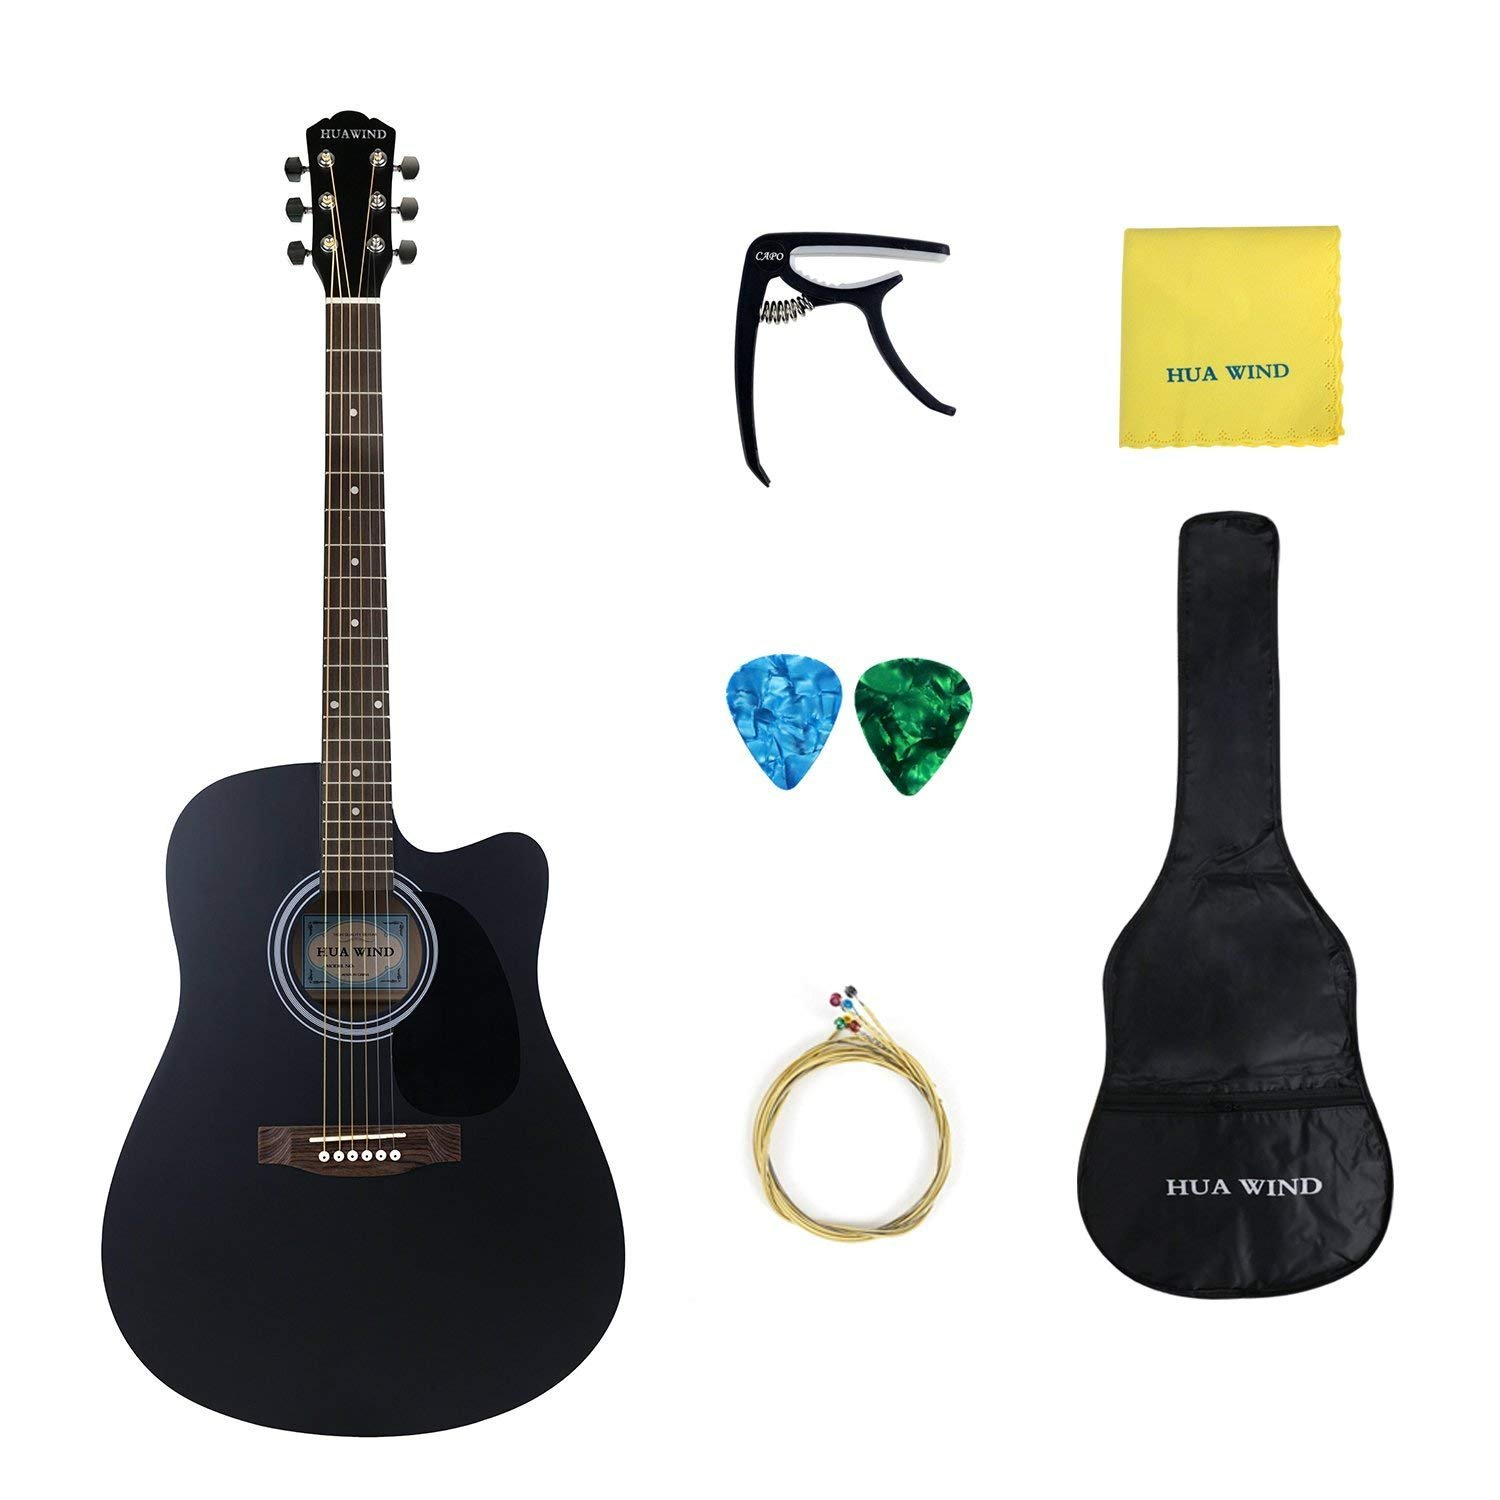 HUAWIND Full Size Acoustic Cutaway Guitar Steel String Dreadnought Complete Starter Kit (Matte Black Cutaway)  Ltd. HW41-AGCBK